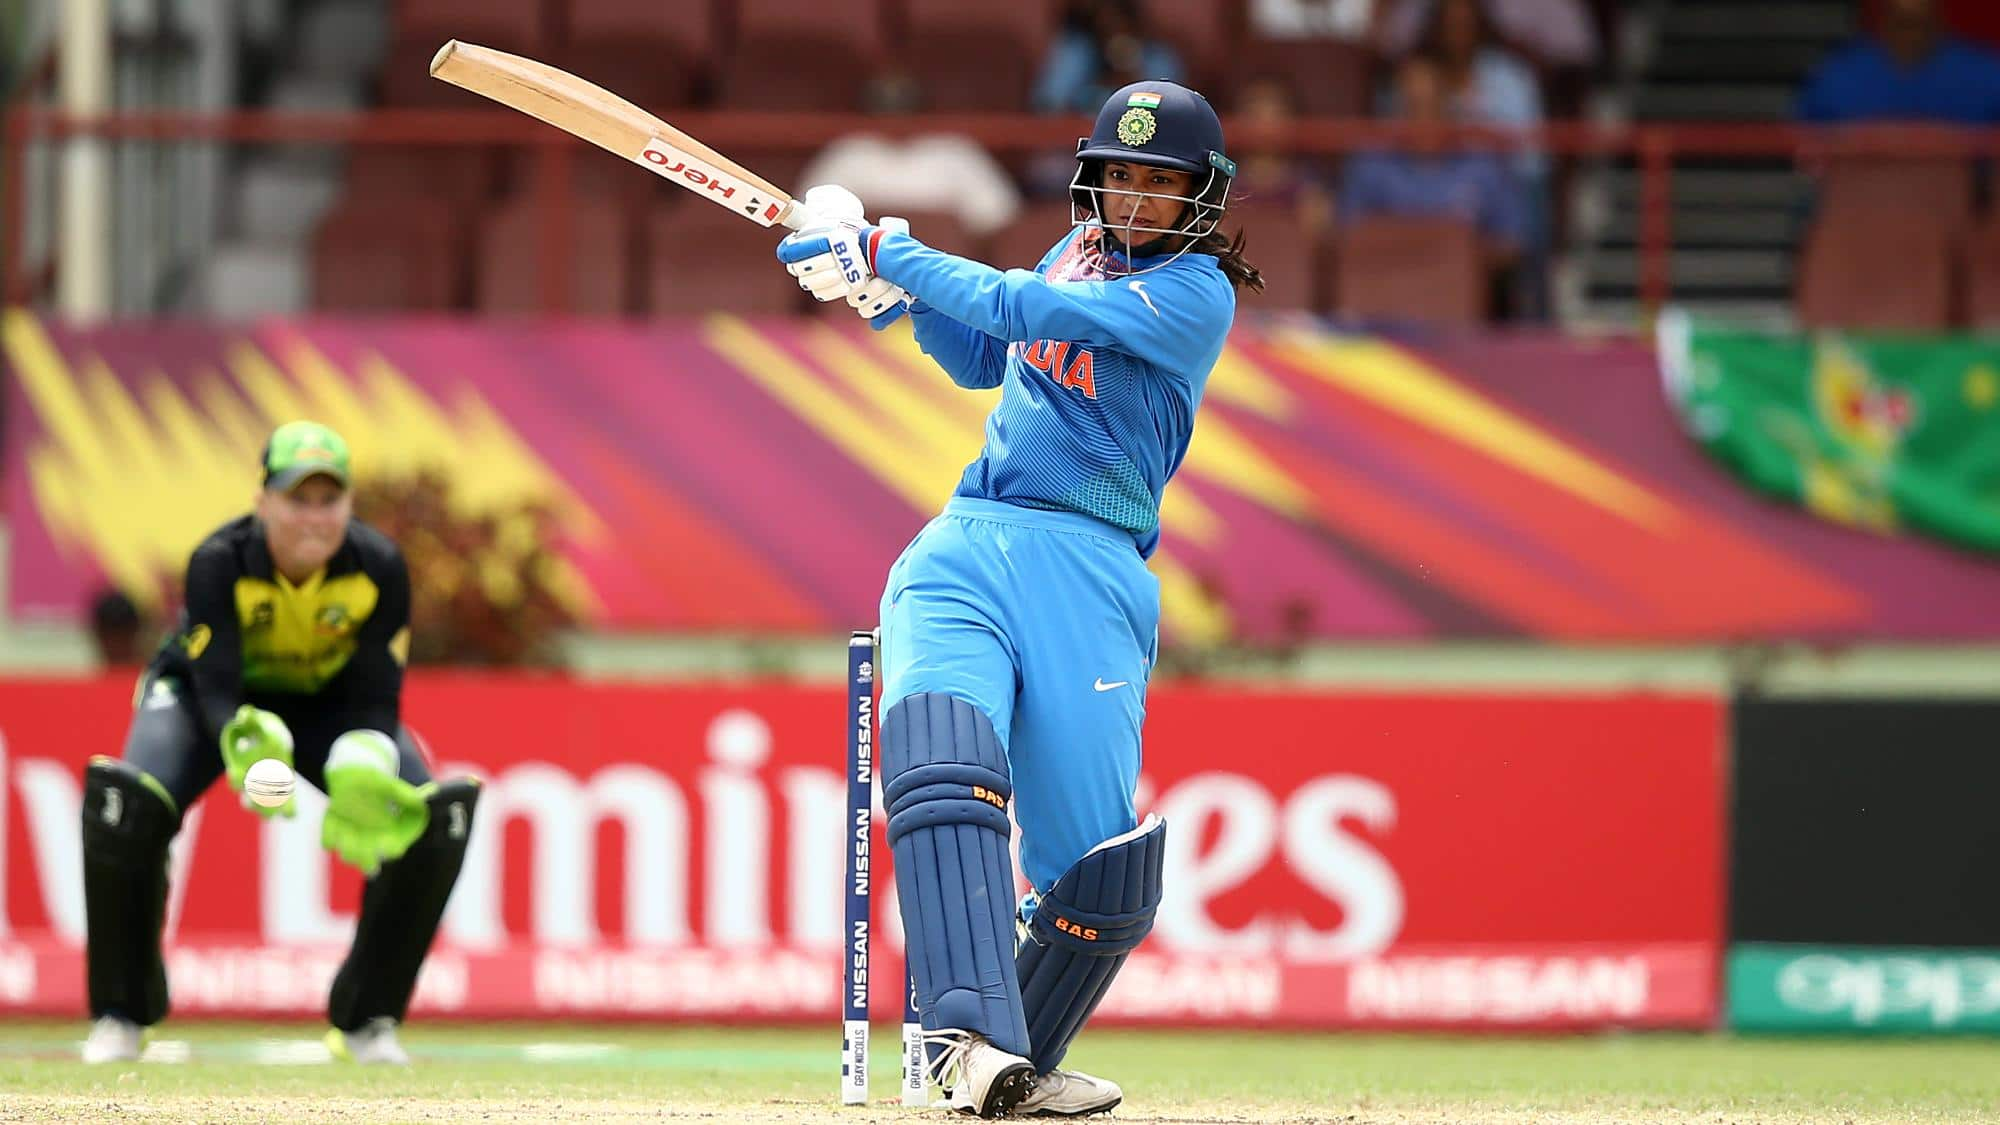 WBBL: Harmanpreet Kaur back with Sydney Thunder, Smriti Mandhana joins Hobart Hurricanes